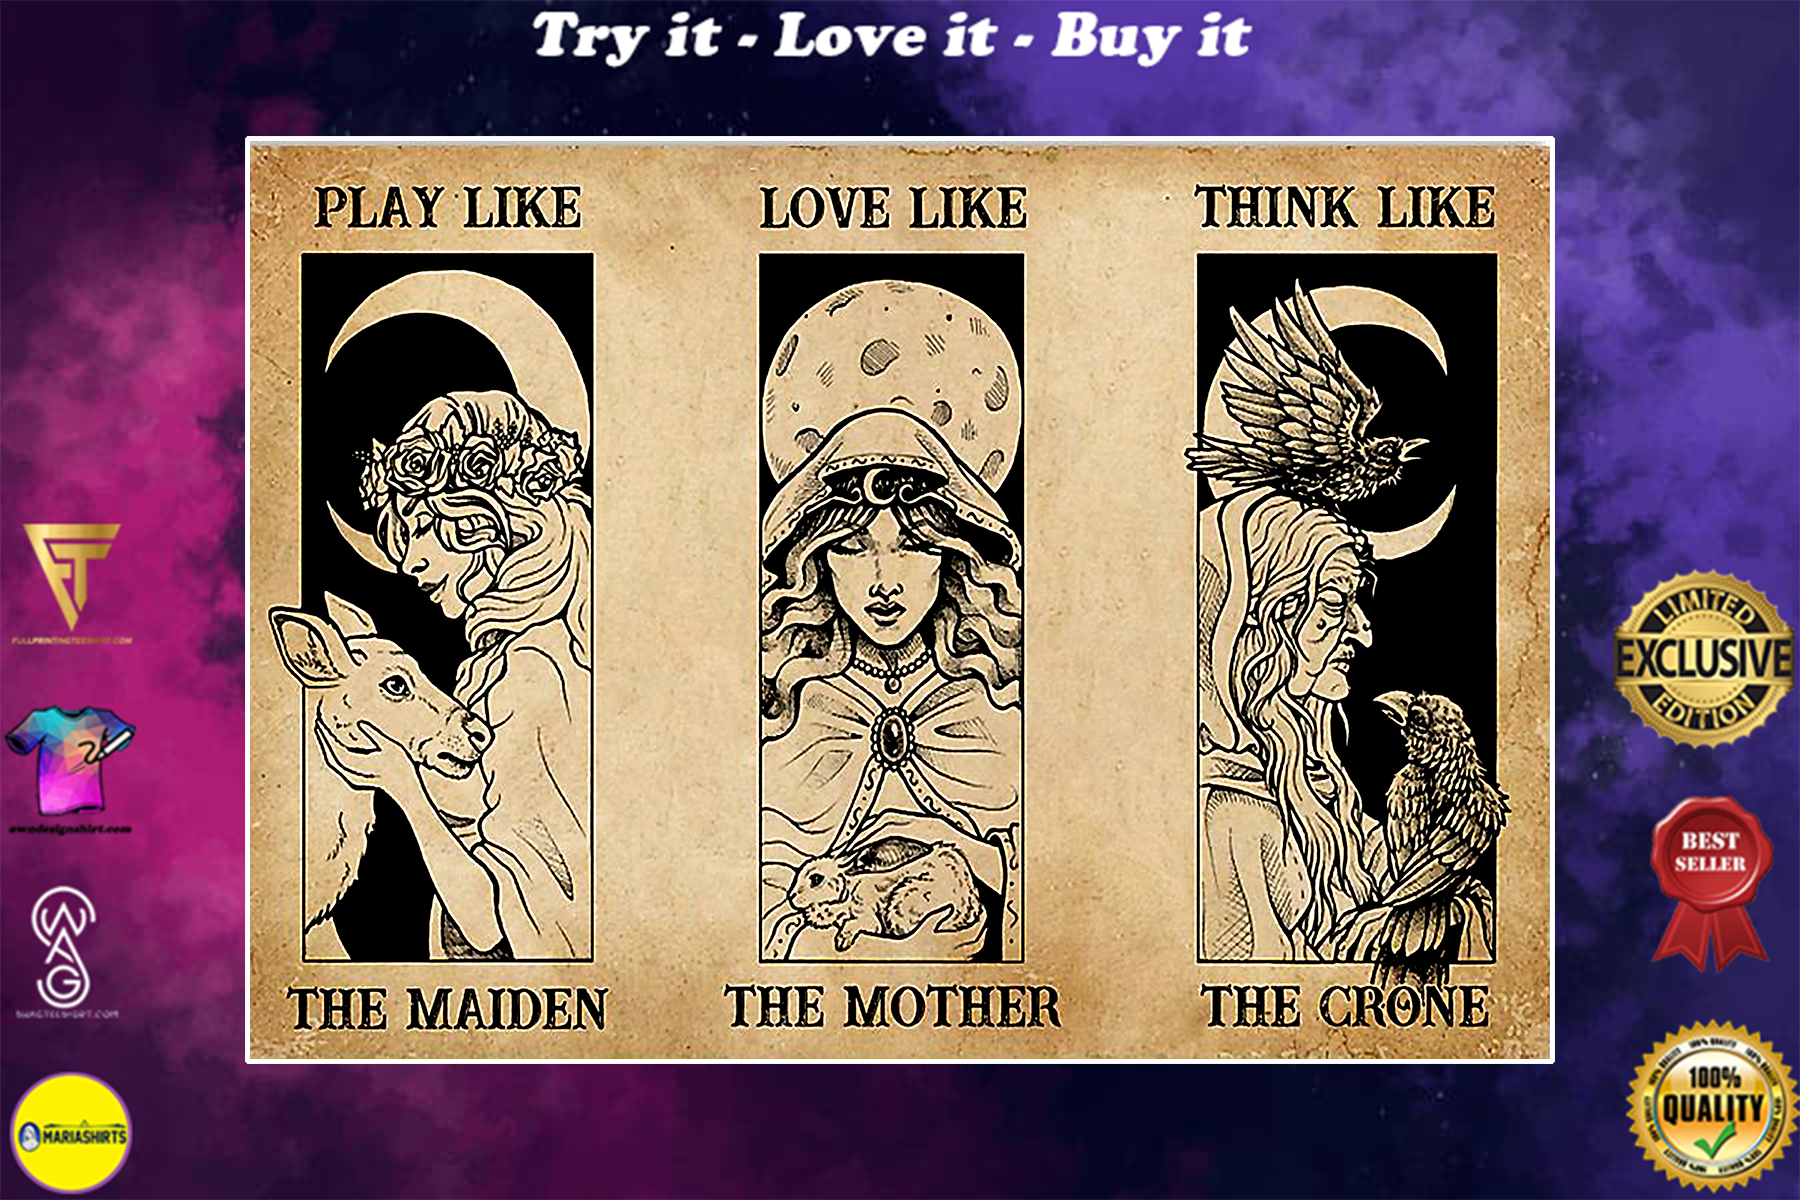 play like the maiden love like the mother think like the crone poster